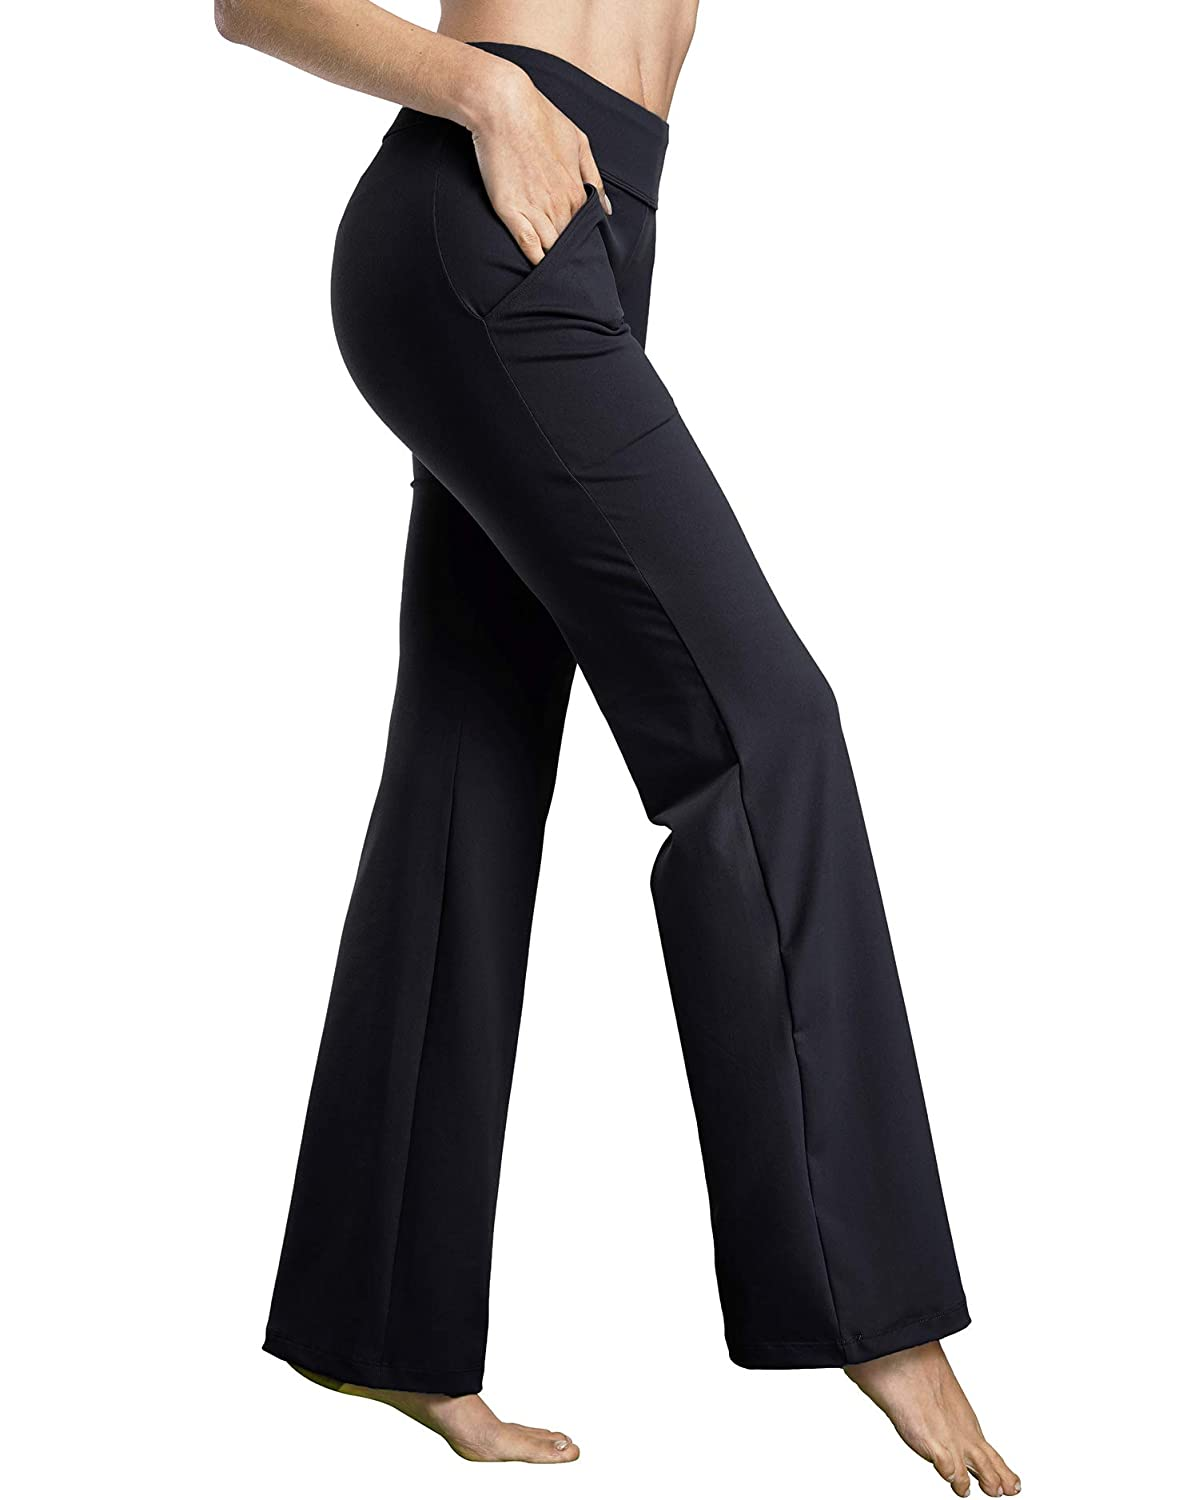 Bamans Womens Yoga Dress Pants Bootcut Leggings with Pockets Petite to Plus  Size Flared Stretch Workout Work Pants